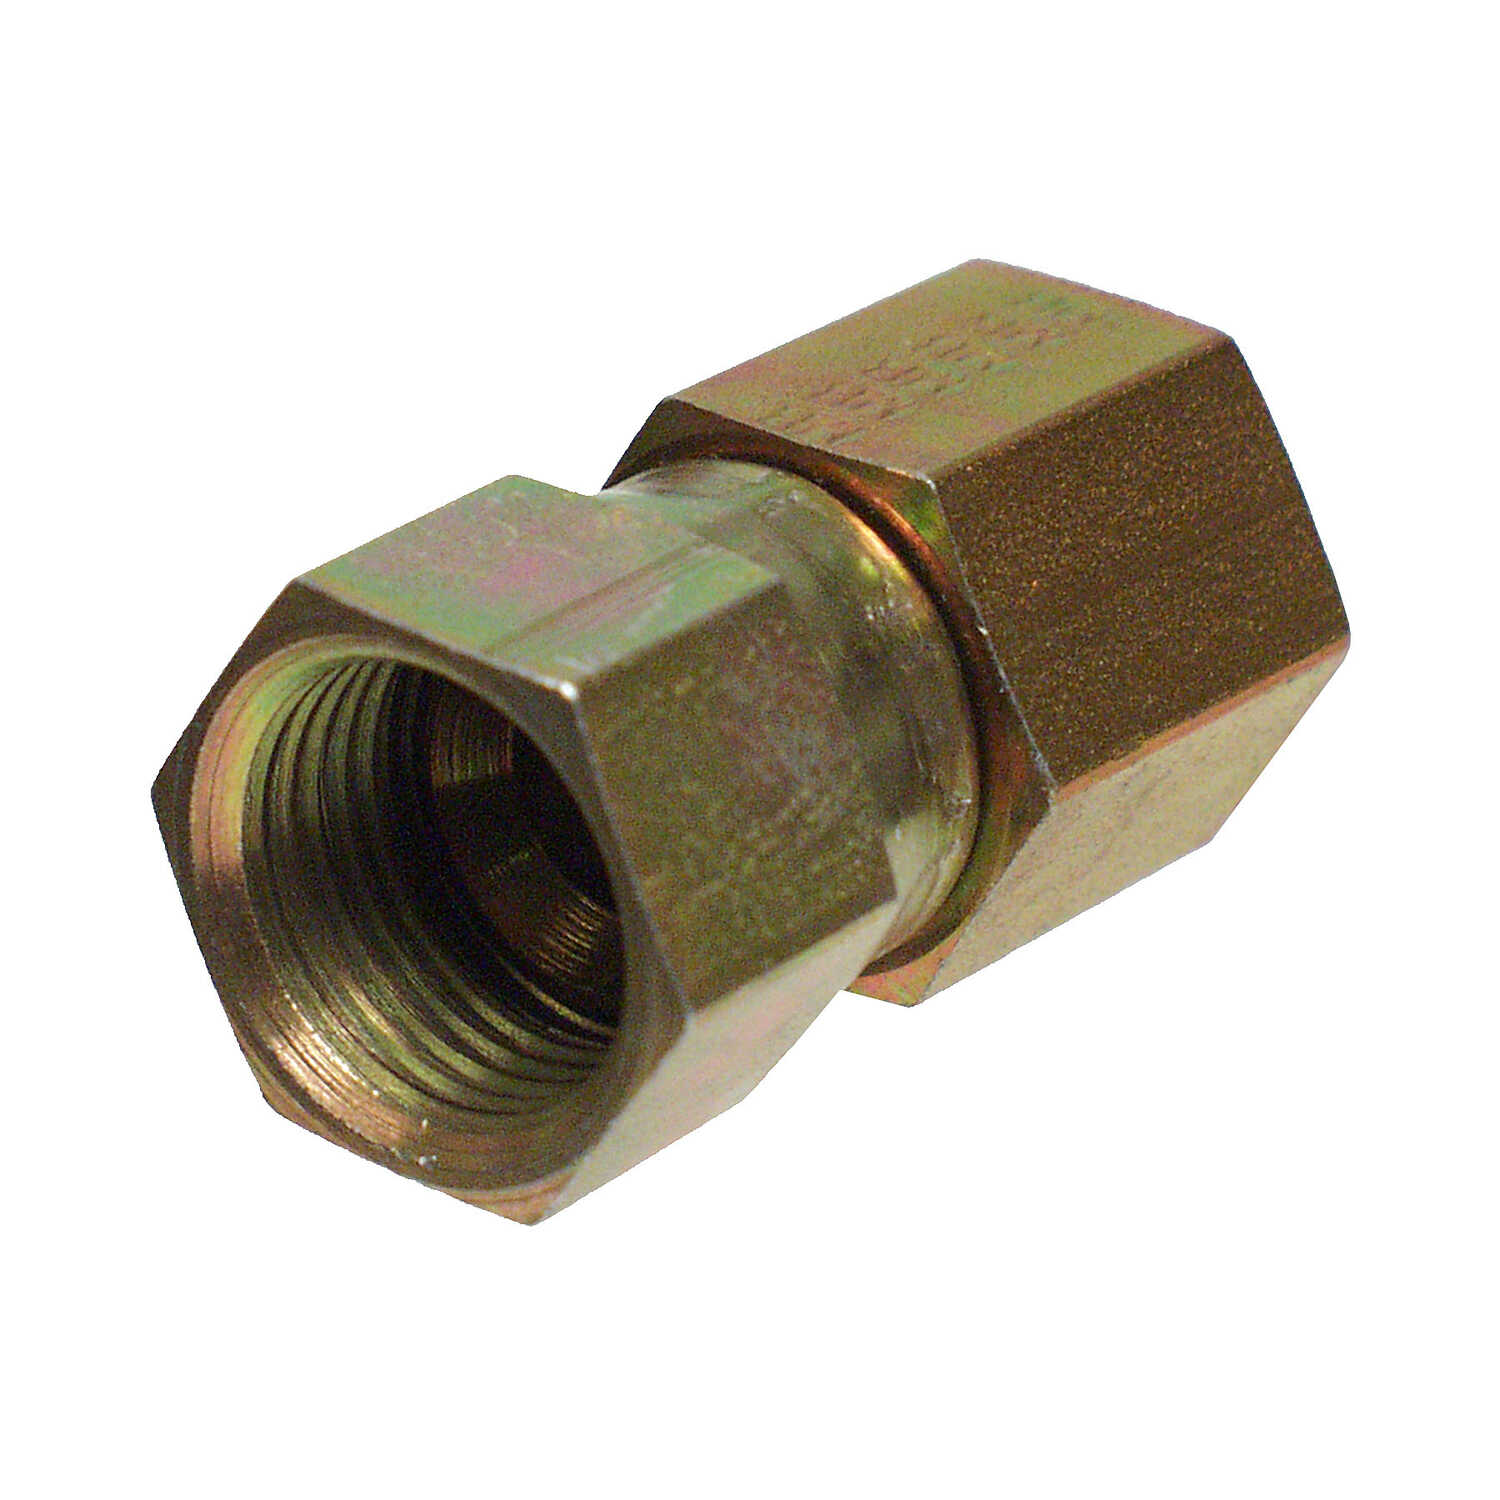 Universal  Hydraulic Adapter  5/8 in. Dia. x 1/2 in. Dia. 1